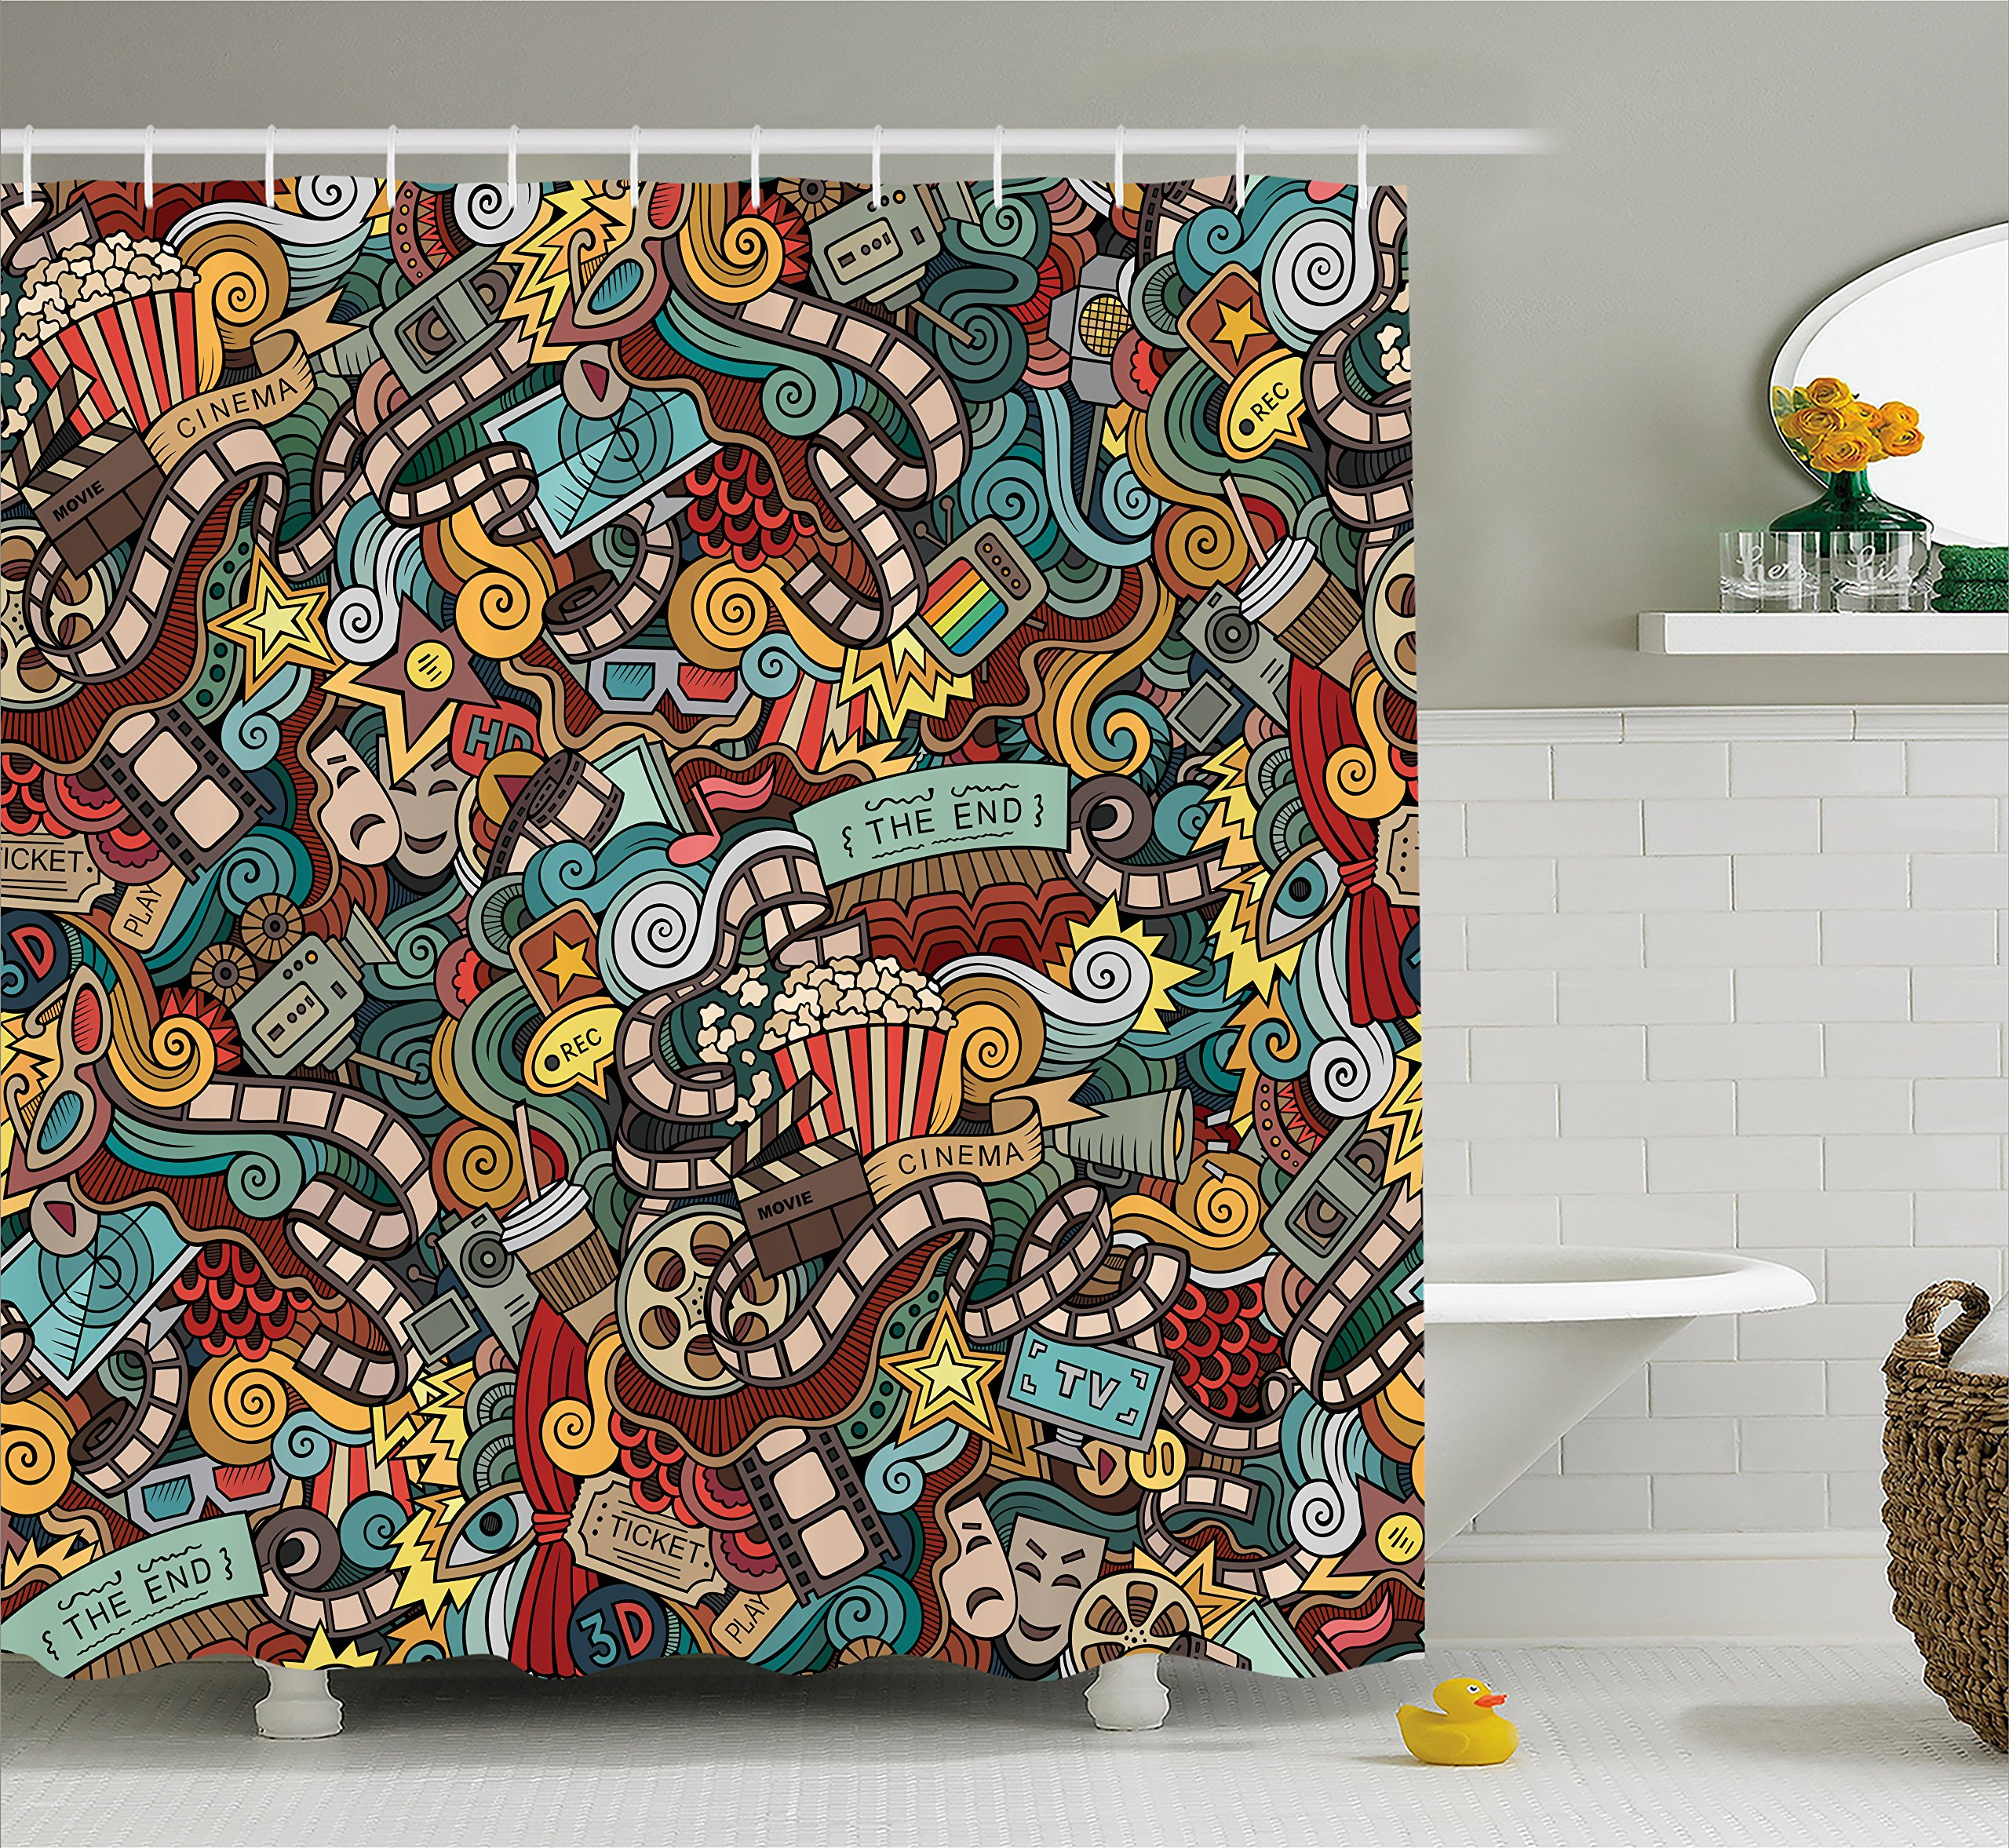 Ambesonne Doodle Shower Curtain, Cinema Items Combined in an Abstract Style Popcorn Movie Reel The End Theatre Masks, Fabric Bathroom Decor Set with Hooks, 70 Inches, Multicolor